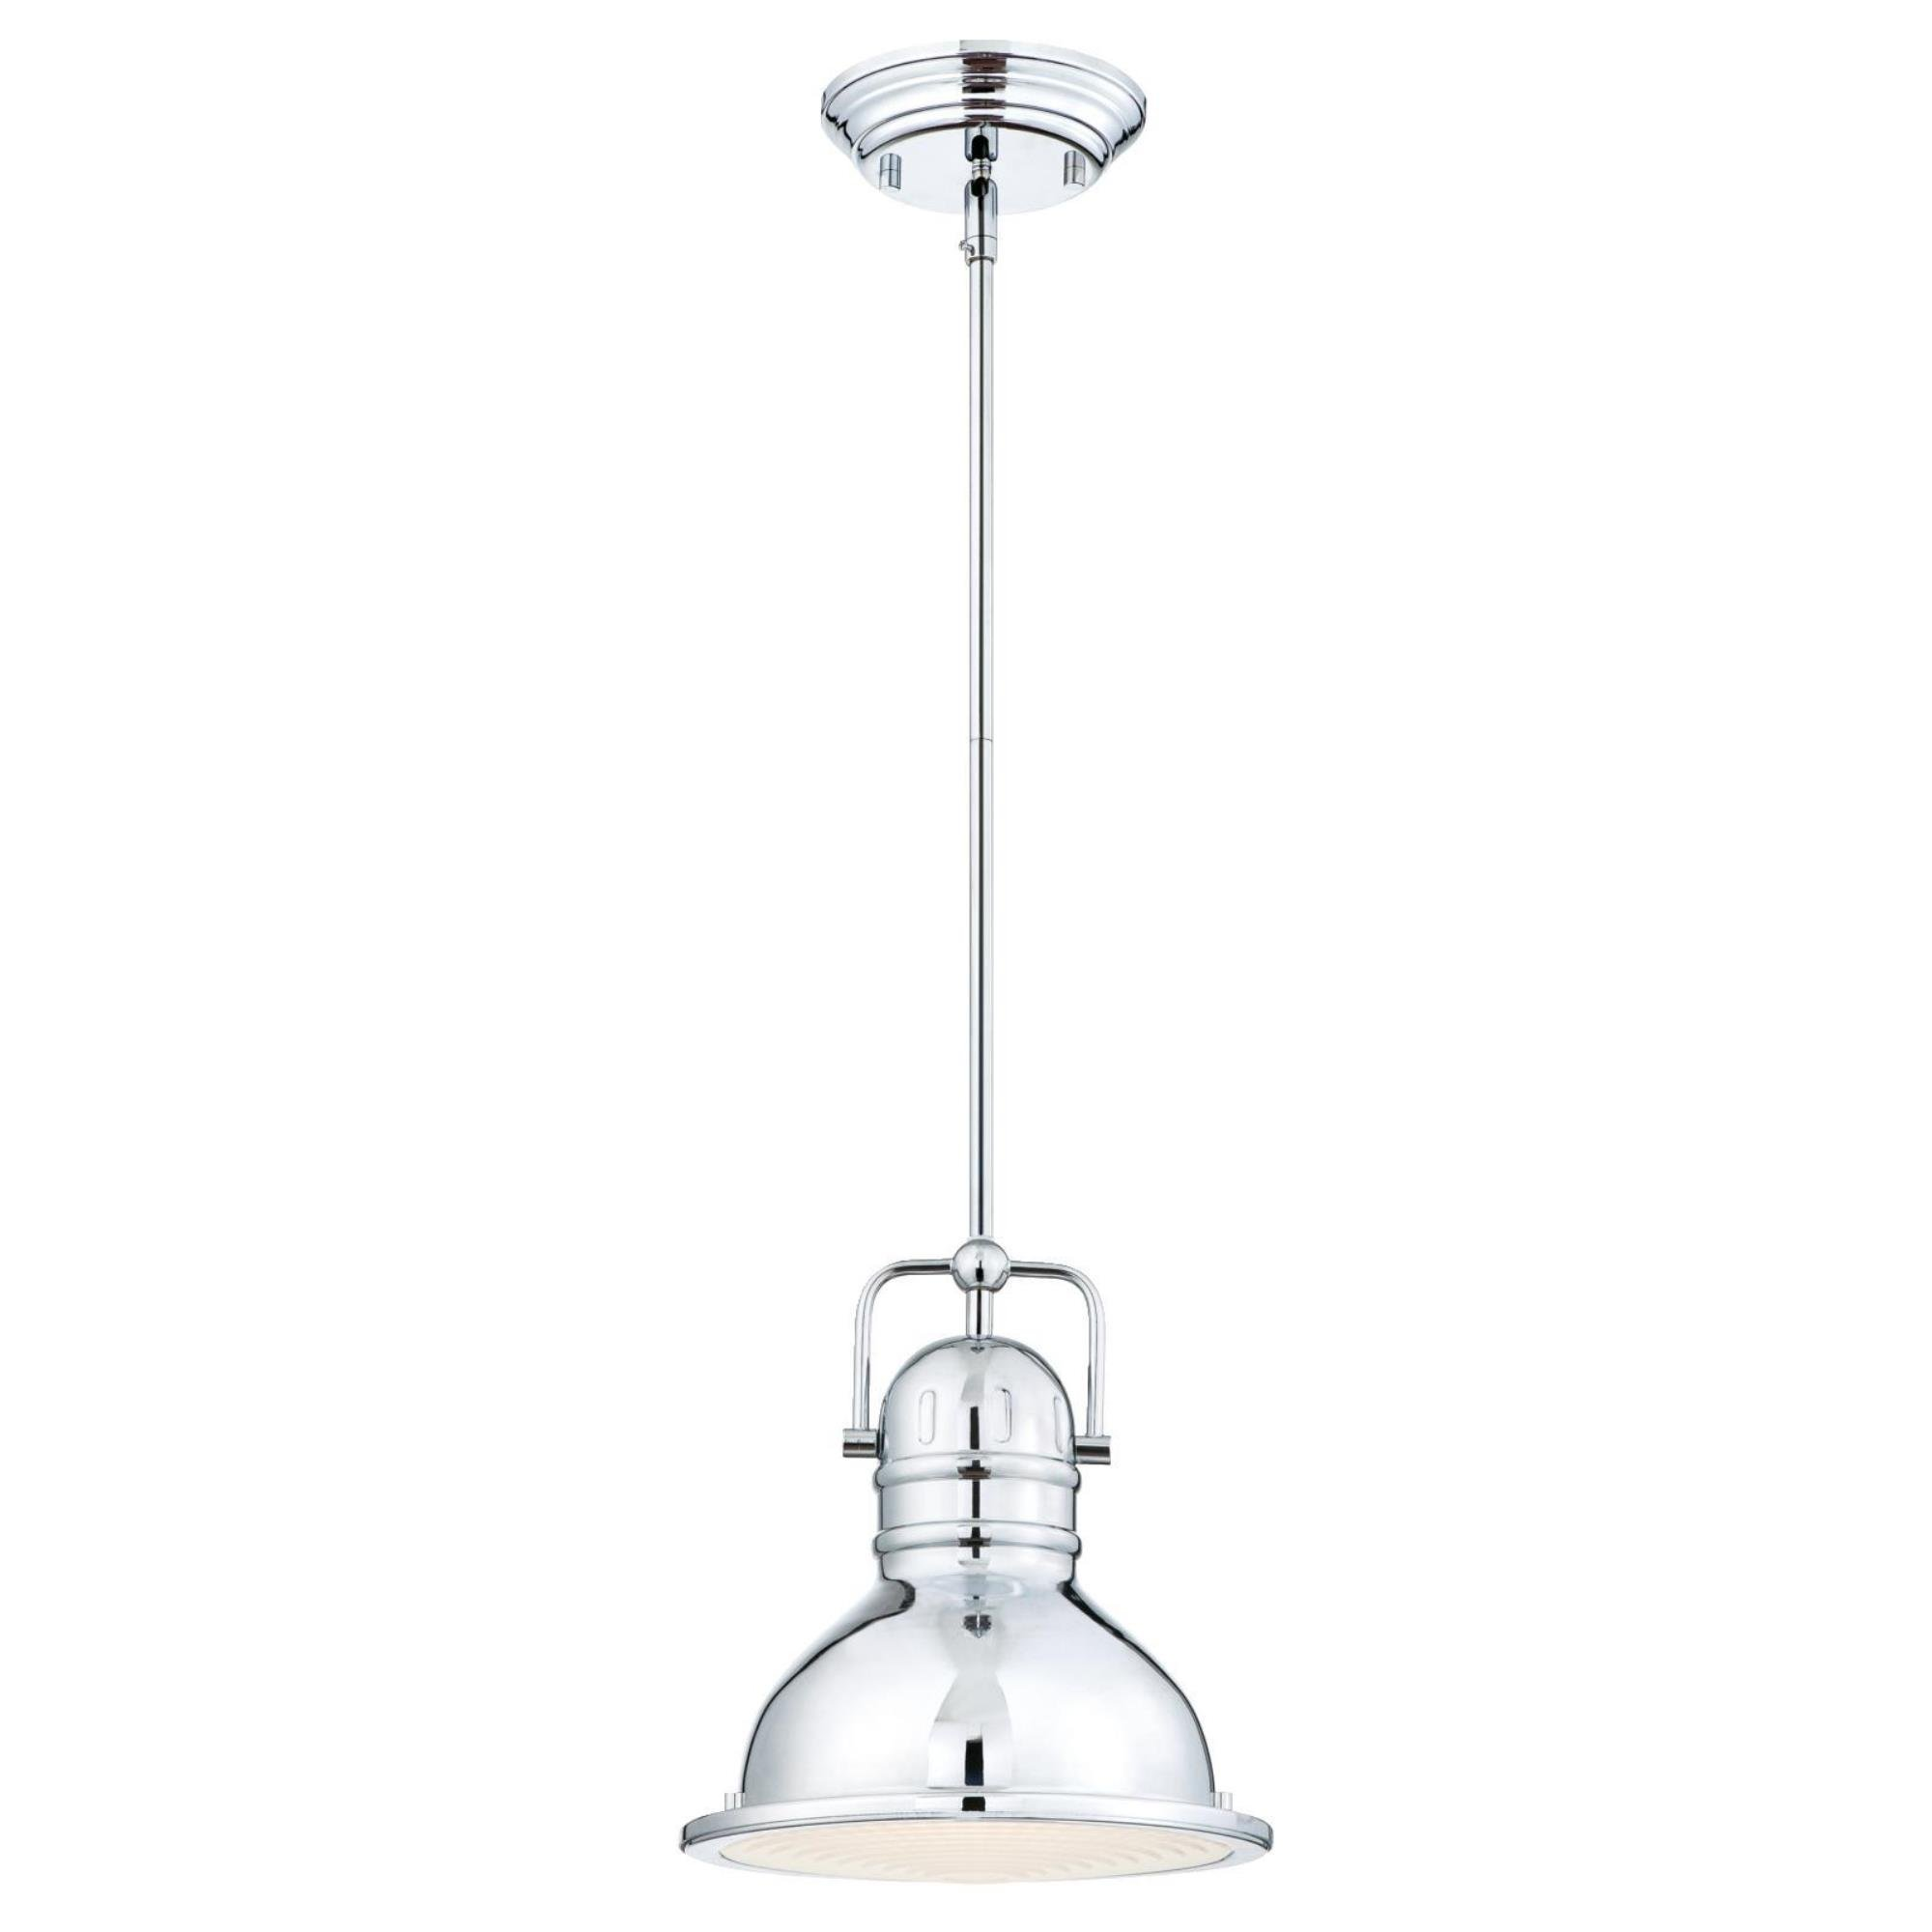 Westinghouse 63083B Boswell One-Light LED Indoor Mini Pendant with Frosted Prismatic Lens, 8.75-Inch Chrome with 11W LED